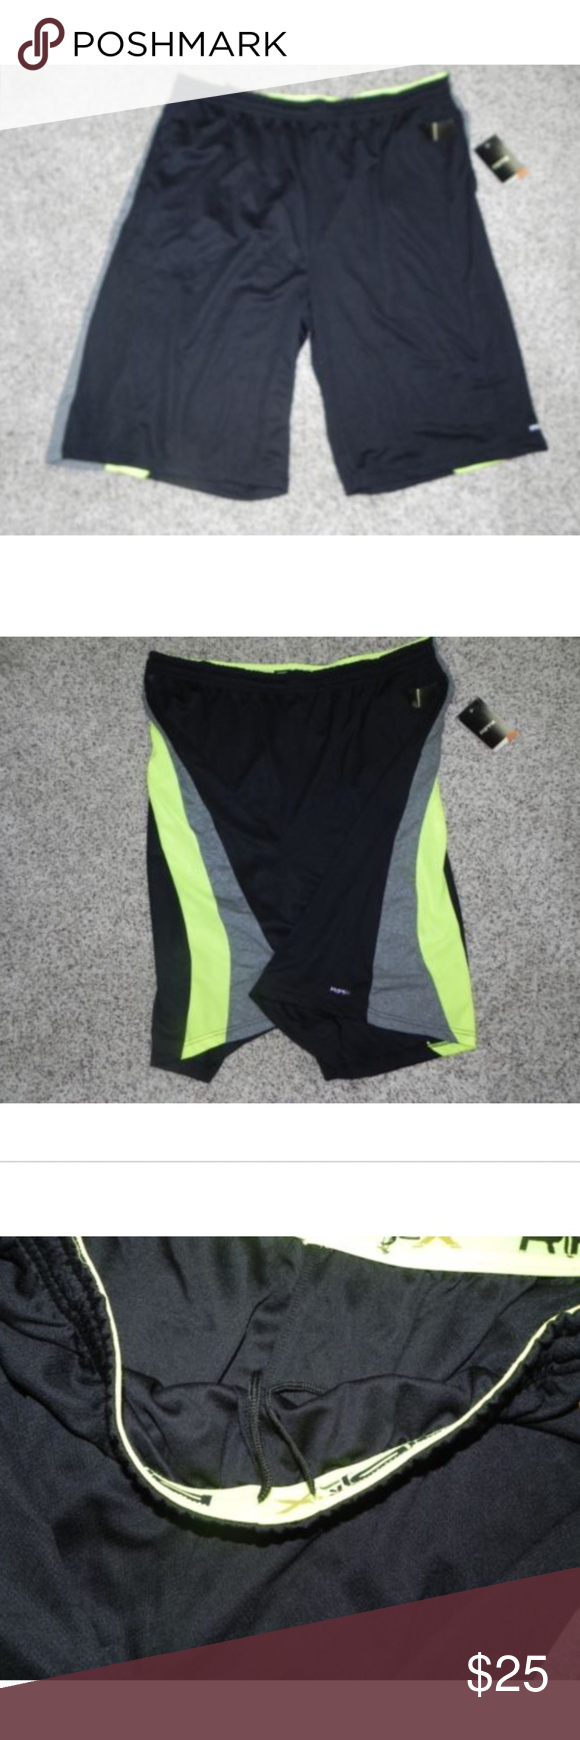 RPX Athletic Shorts Big /& Tall 4X Dri-Tech Basketball Mens Black Grey Lime NWT